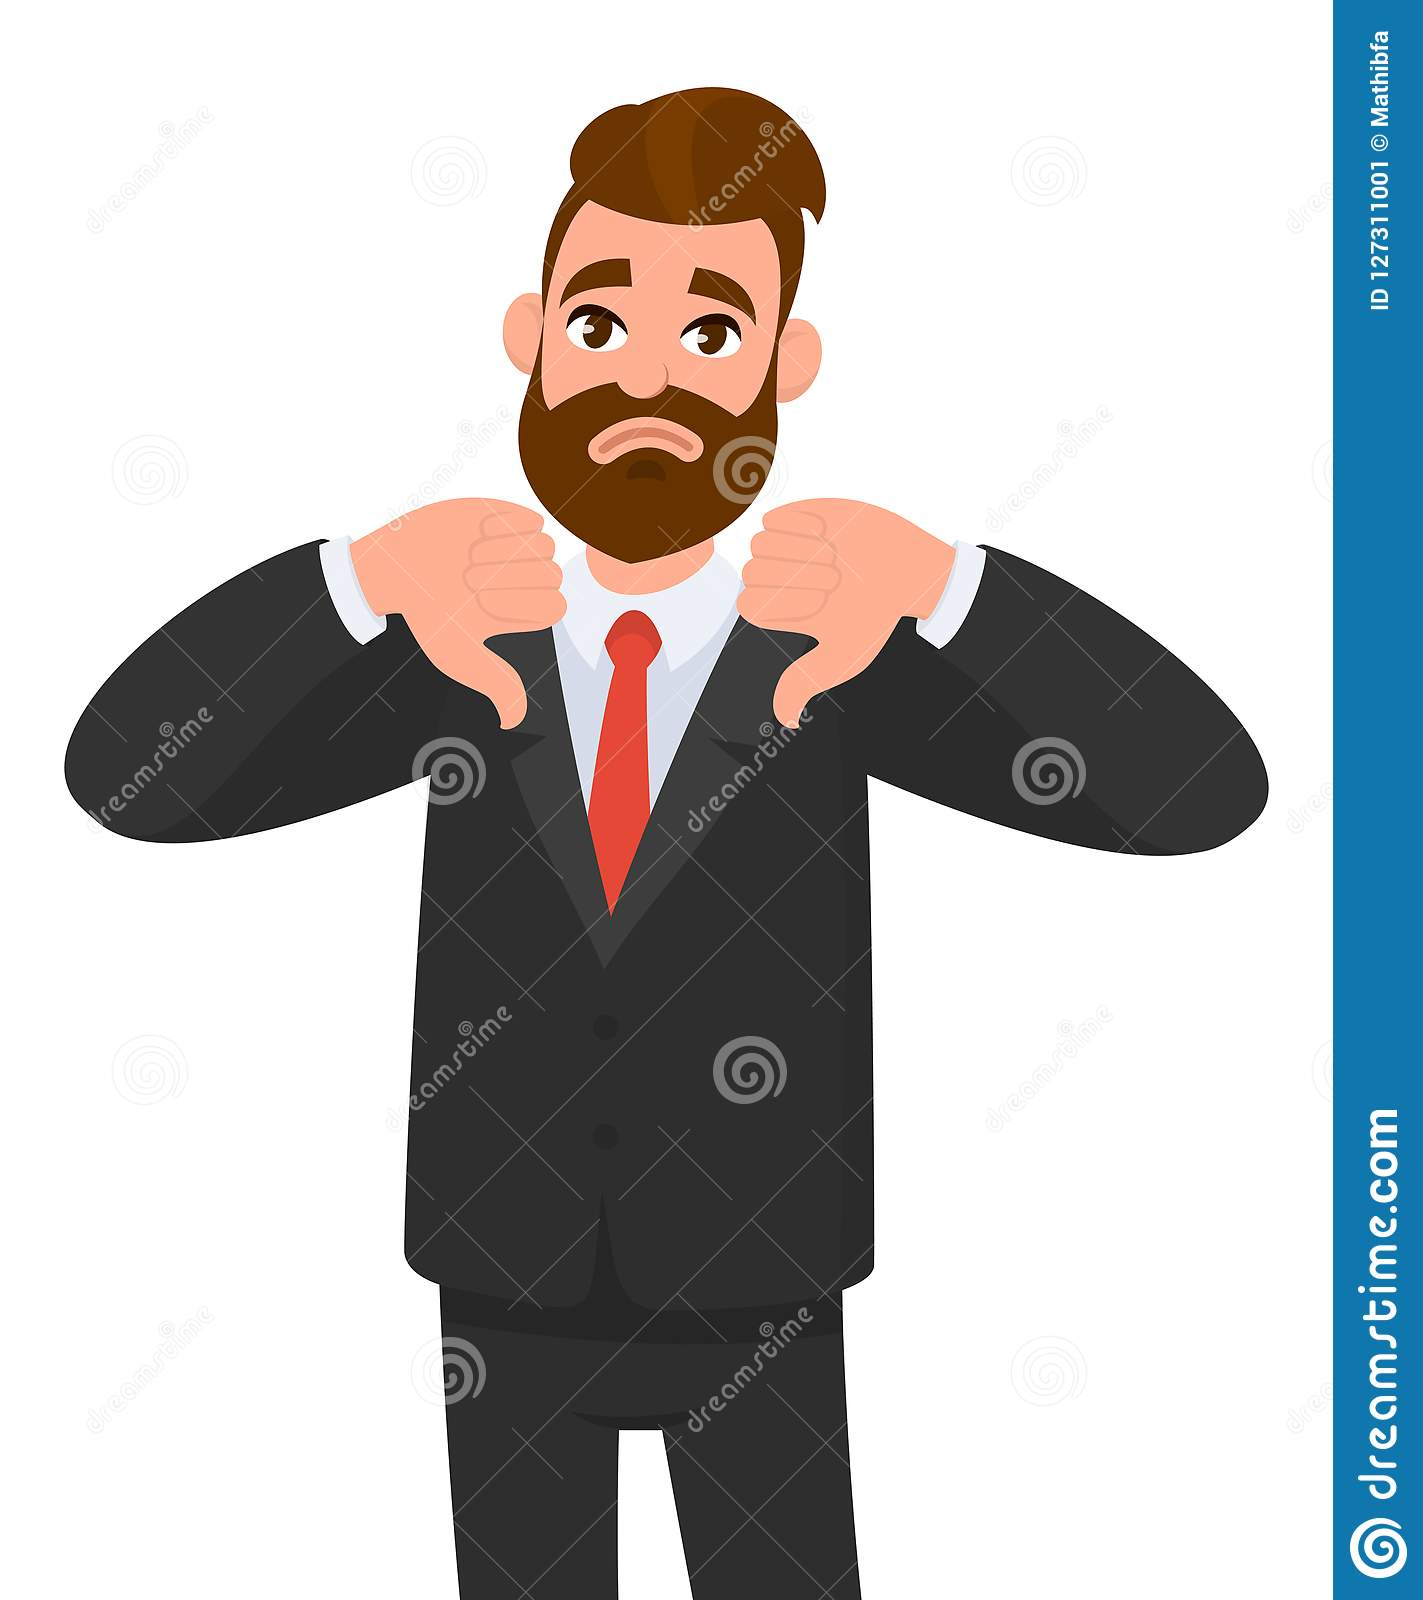 Young business man showing thumbs down sign, dislike, looks withYoung business man showing thumbs down sign, dislike, looks with n